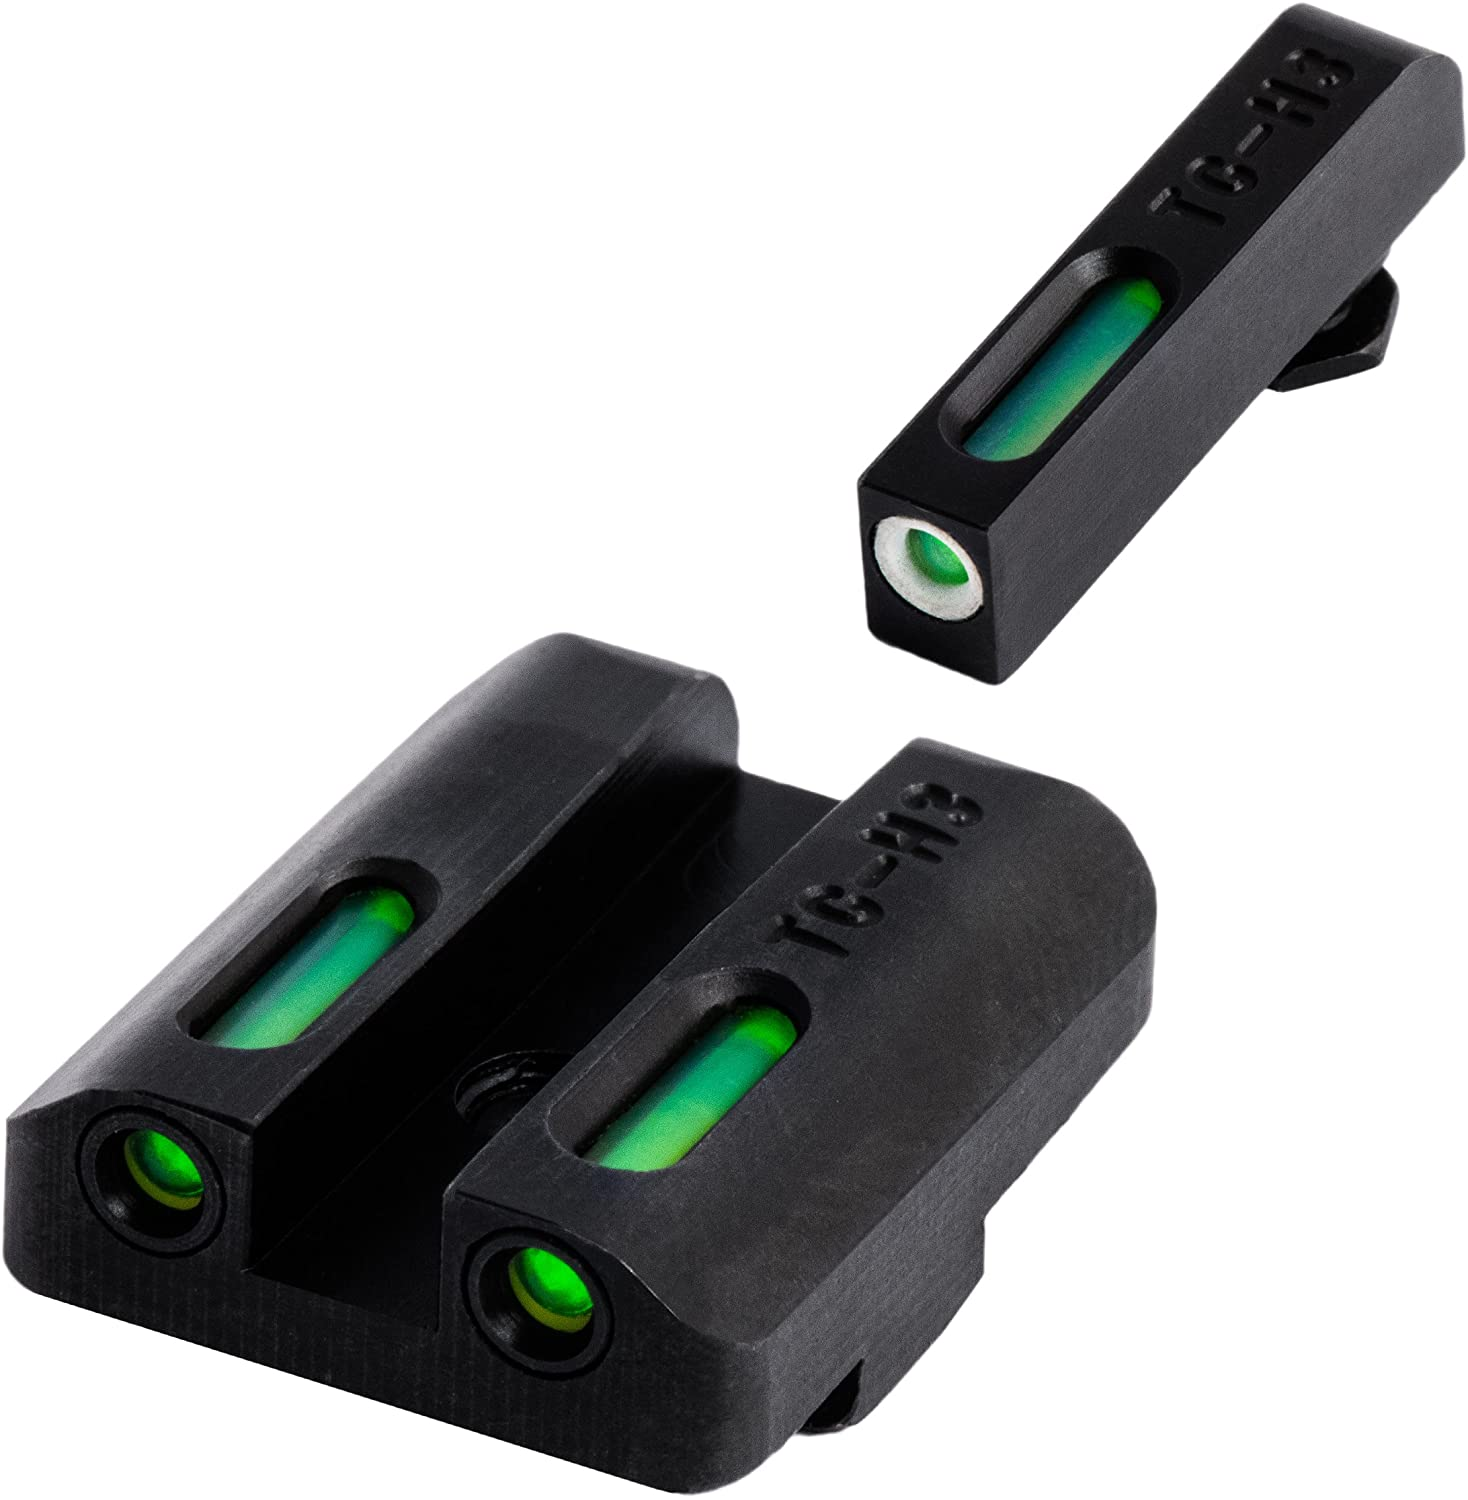 1. TRUGLO TFX Tritium and Fiber-Optic Xtreme Handgun Sights for Glock Pistols